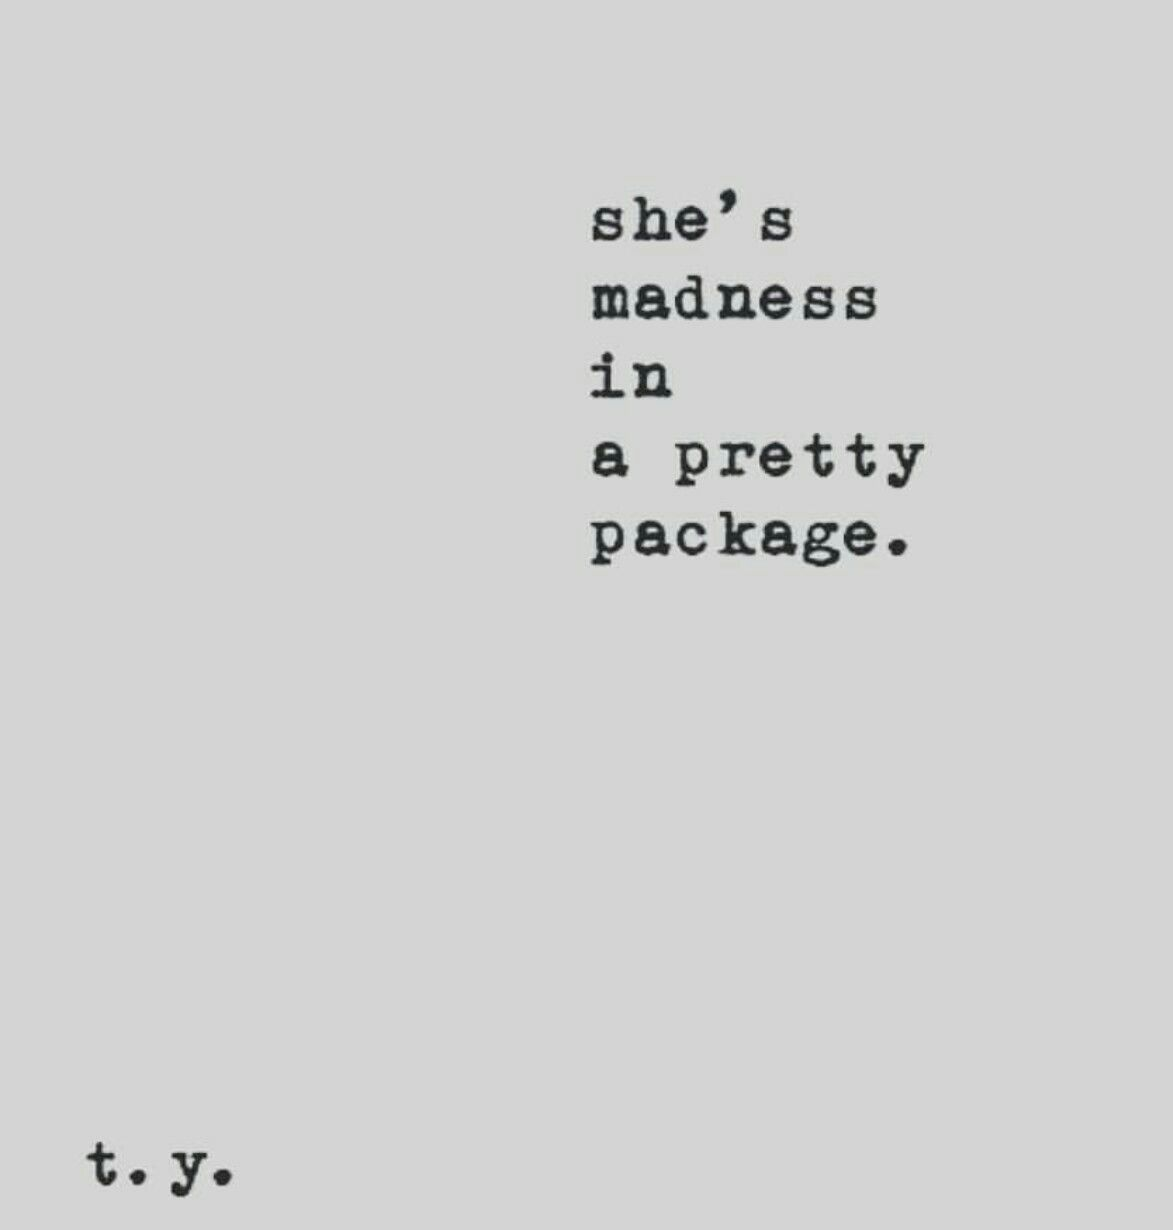 SHE's madness in a pretty package. #prettypackaging